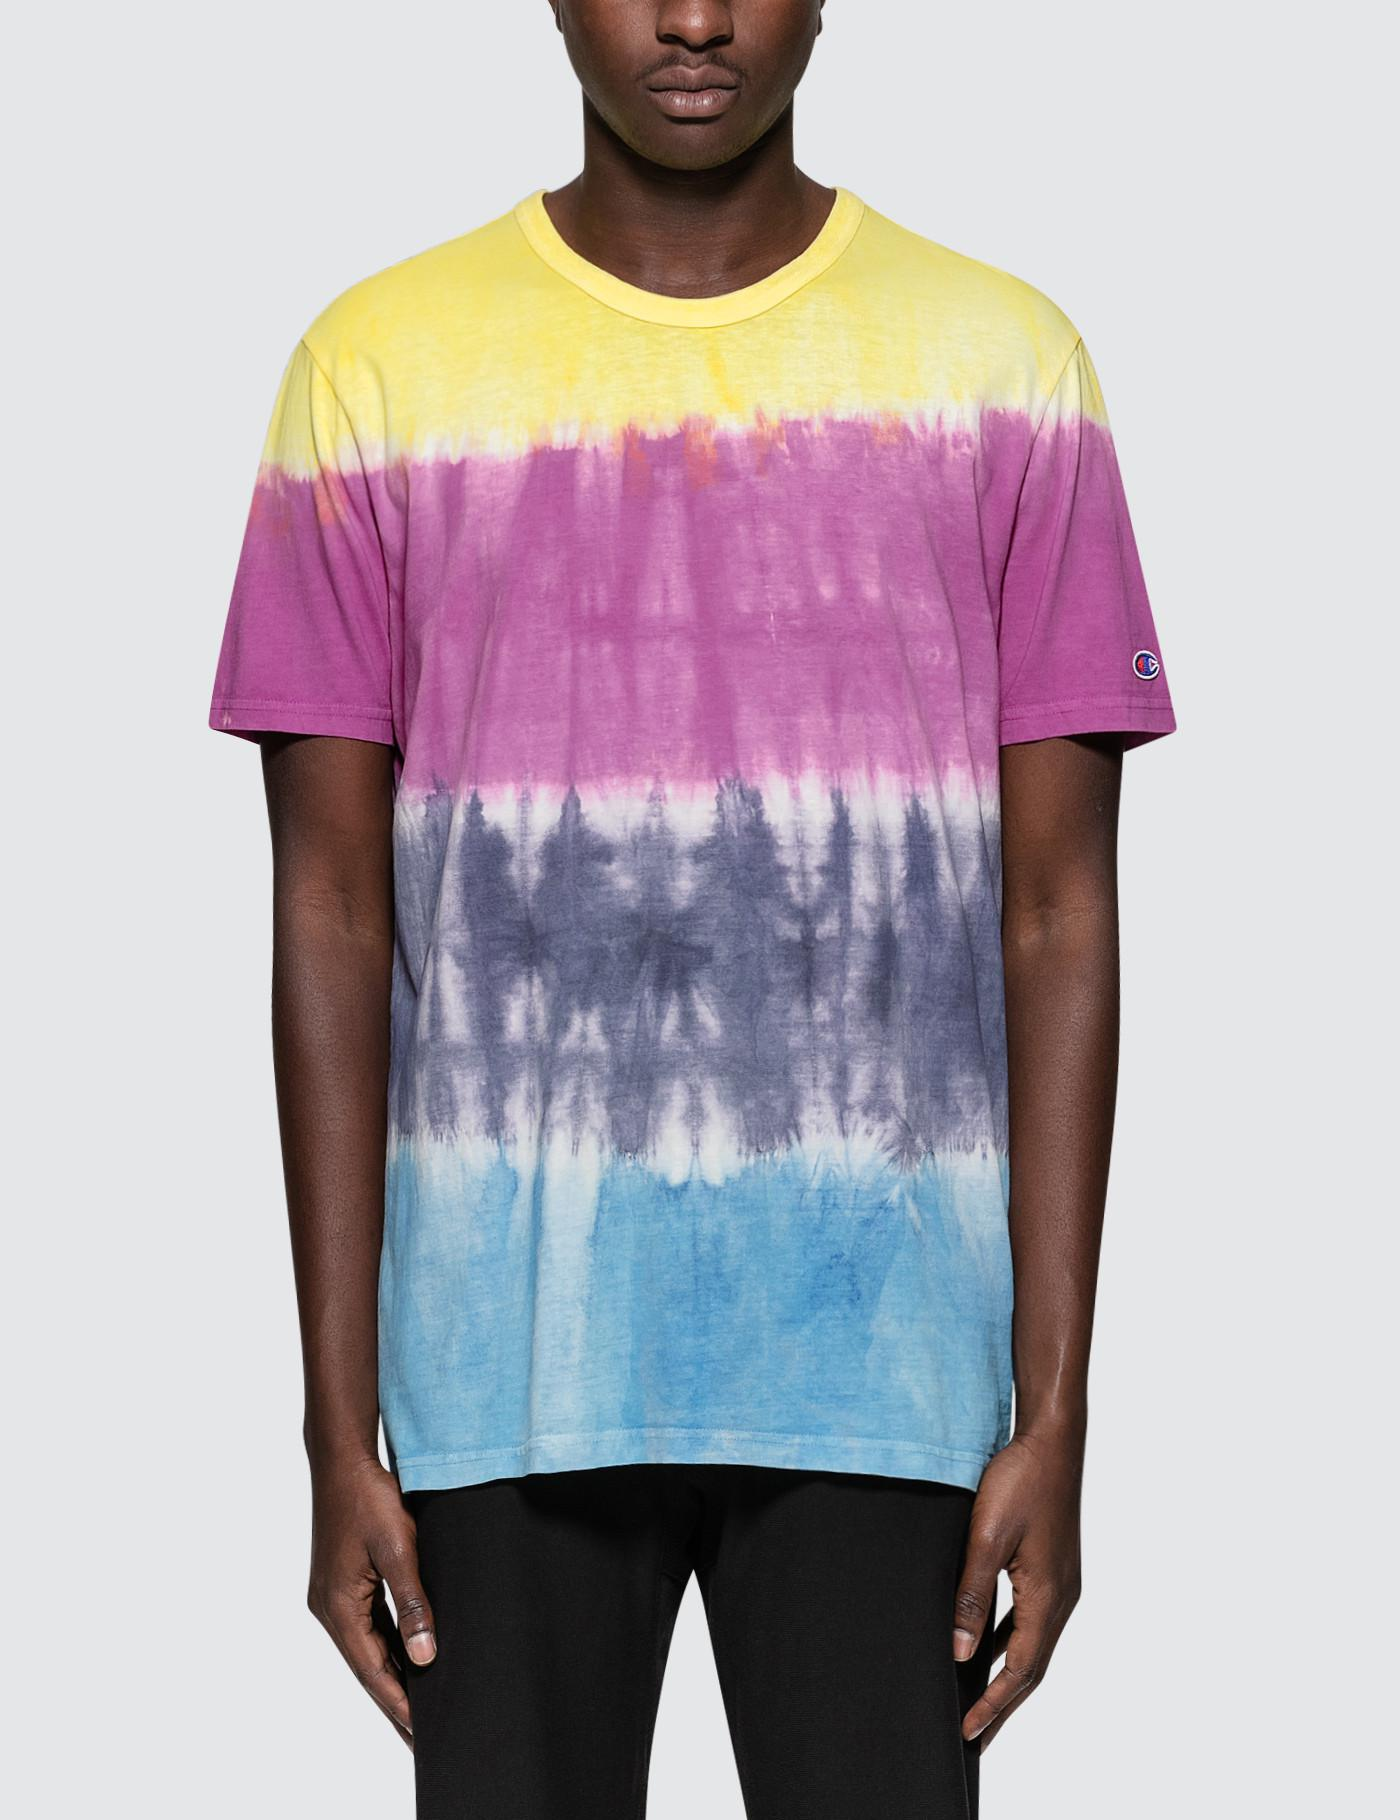 2041eb920356 Champion 68 Wave Tie-dye S/s T-shirt for Men - Lyst